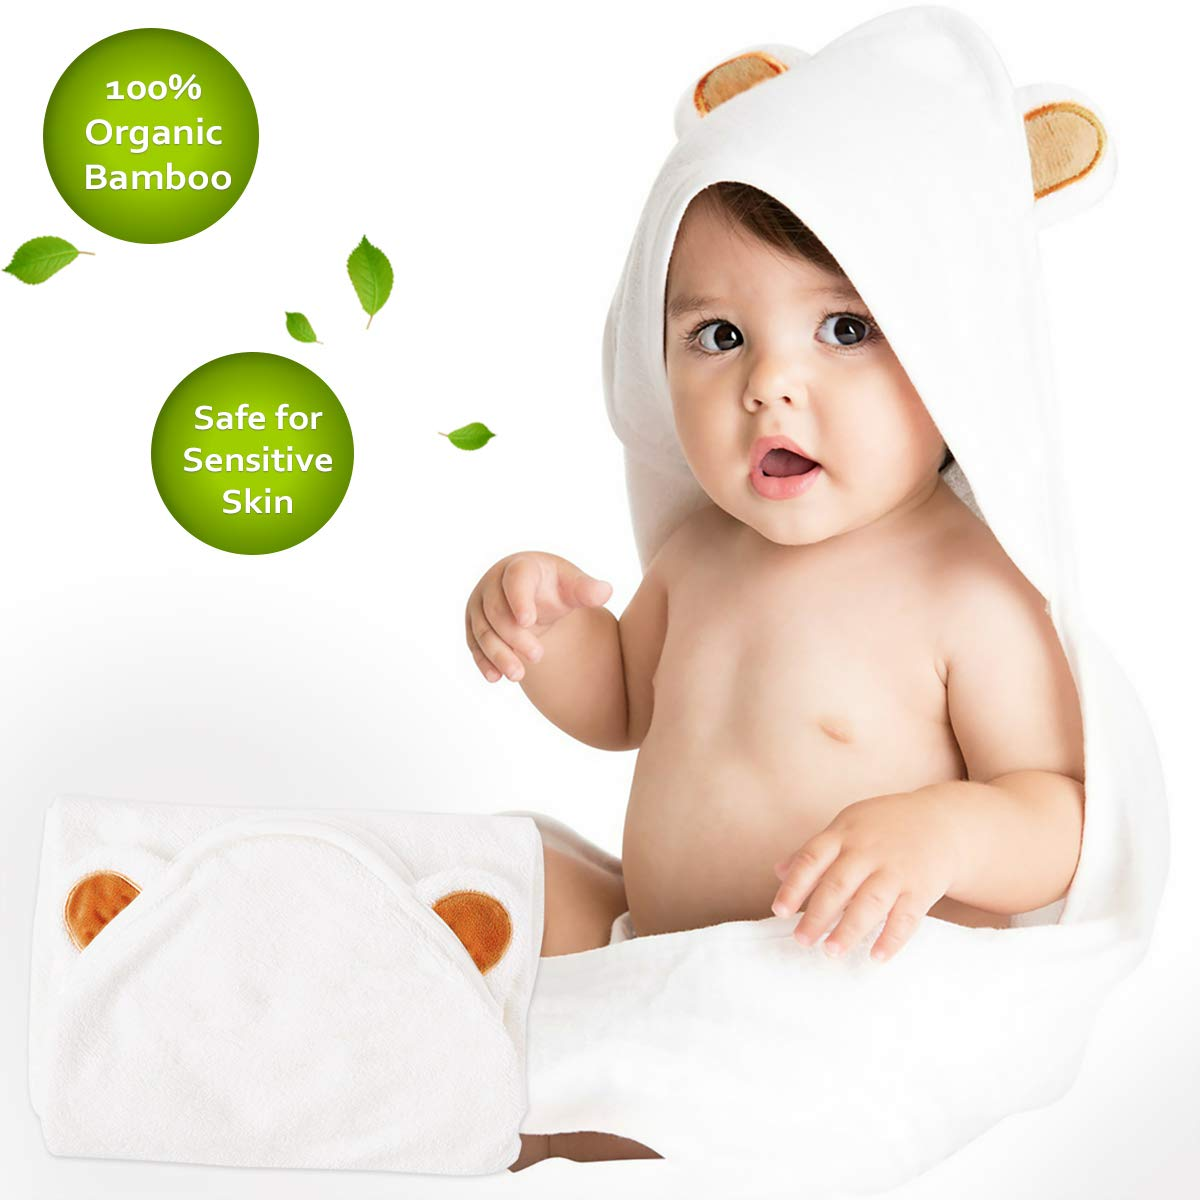 Bath Hooded Towel for Boy Girl 100% Organic Bamboo Ultra Soft and Super Absorbent Toddler Bath Towel with Hood Textile Bath Hooded Towel Great Infant Newborn Shower Present(7575cm) 784237019416